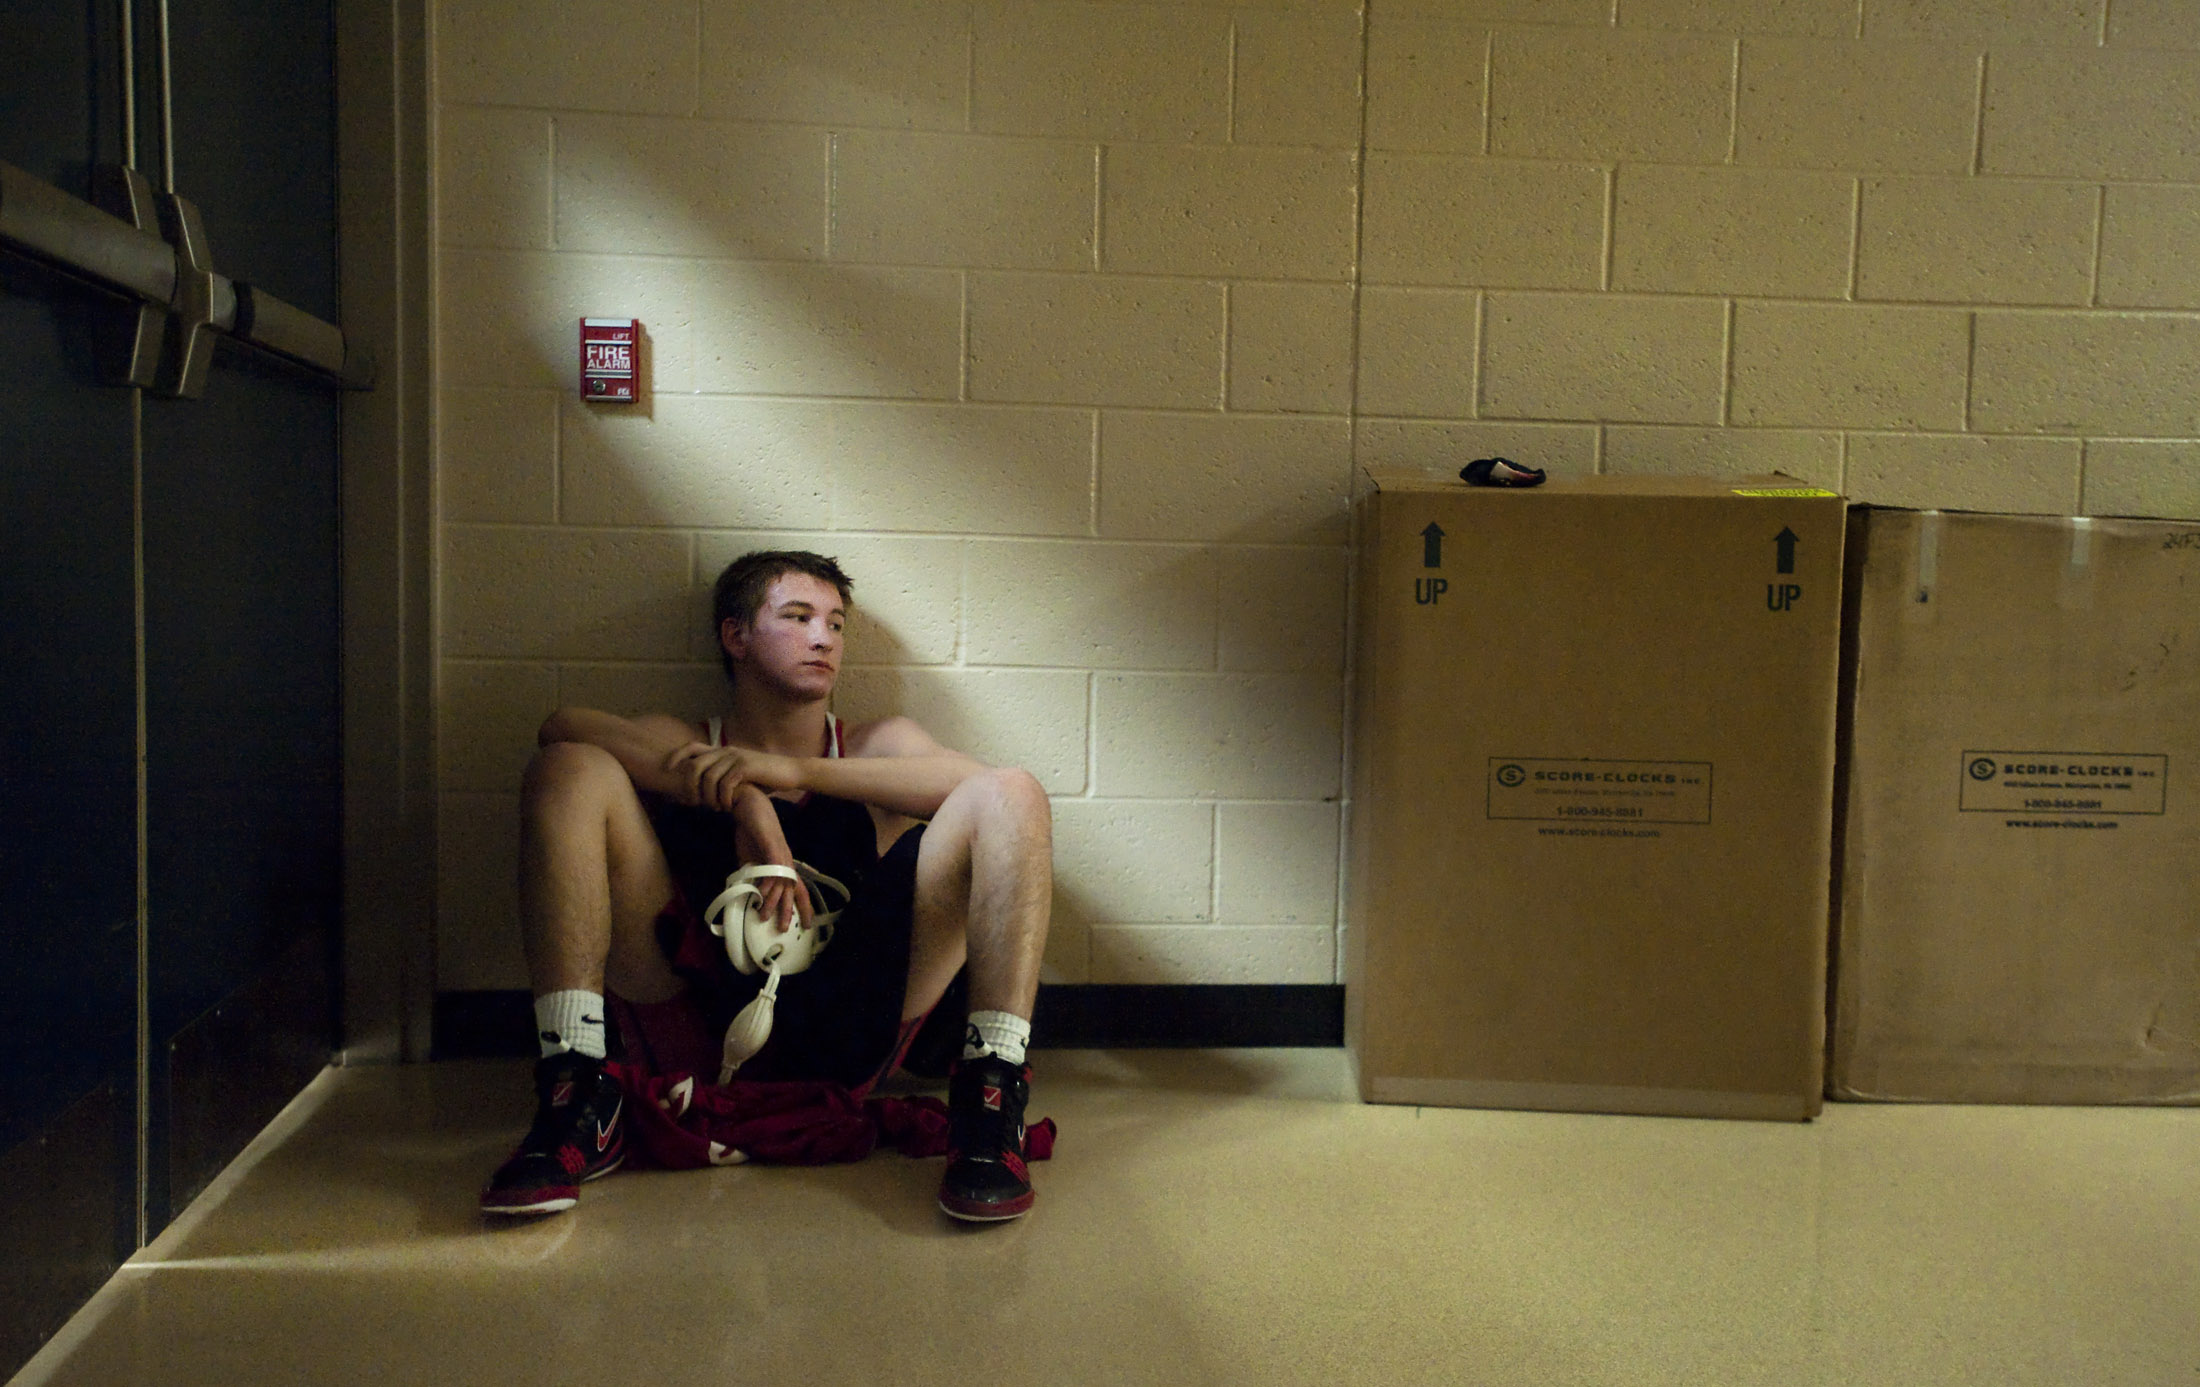 Southmoreland's Jaden Datz sits in a hallway after his first round loss on Friday, Jan. 8, 2015 during the WCCA tournament.